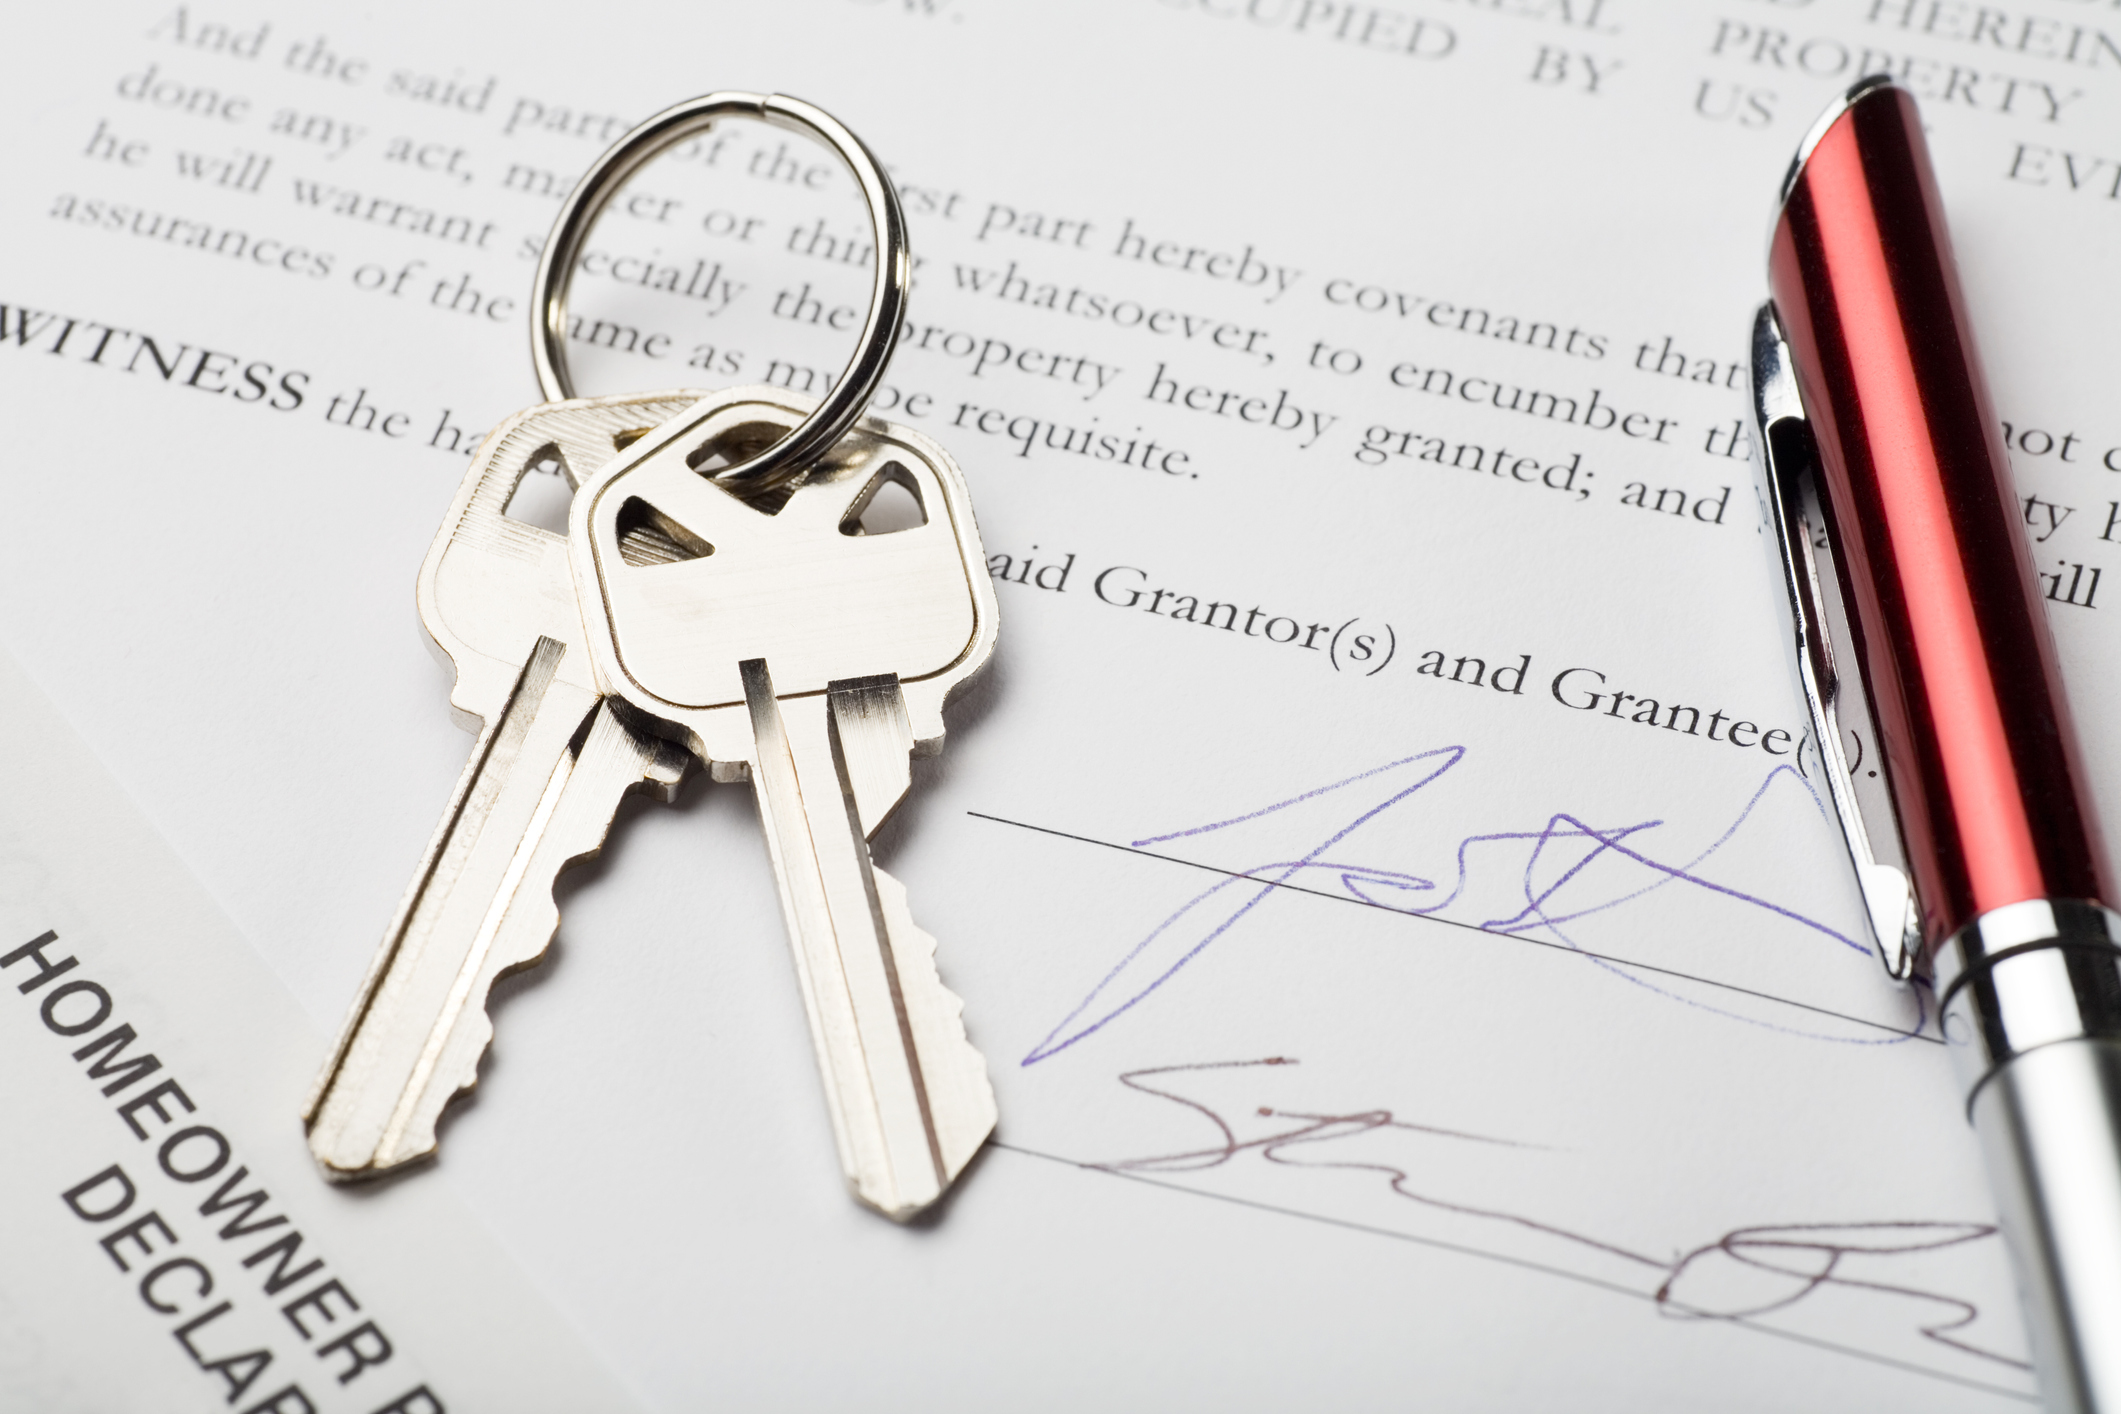 Klosinski Overstreet discusses the importance of including contingencies in real estate contracts.